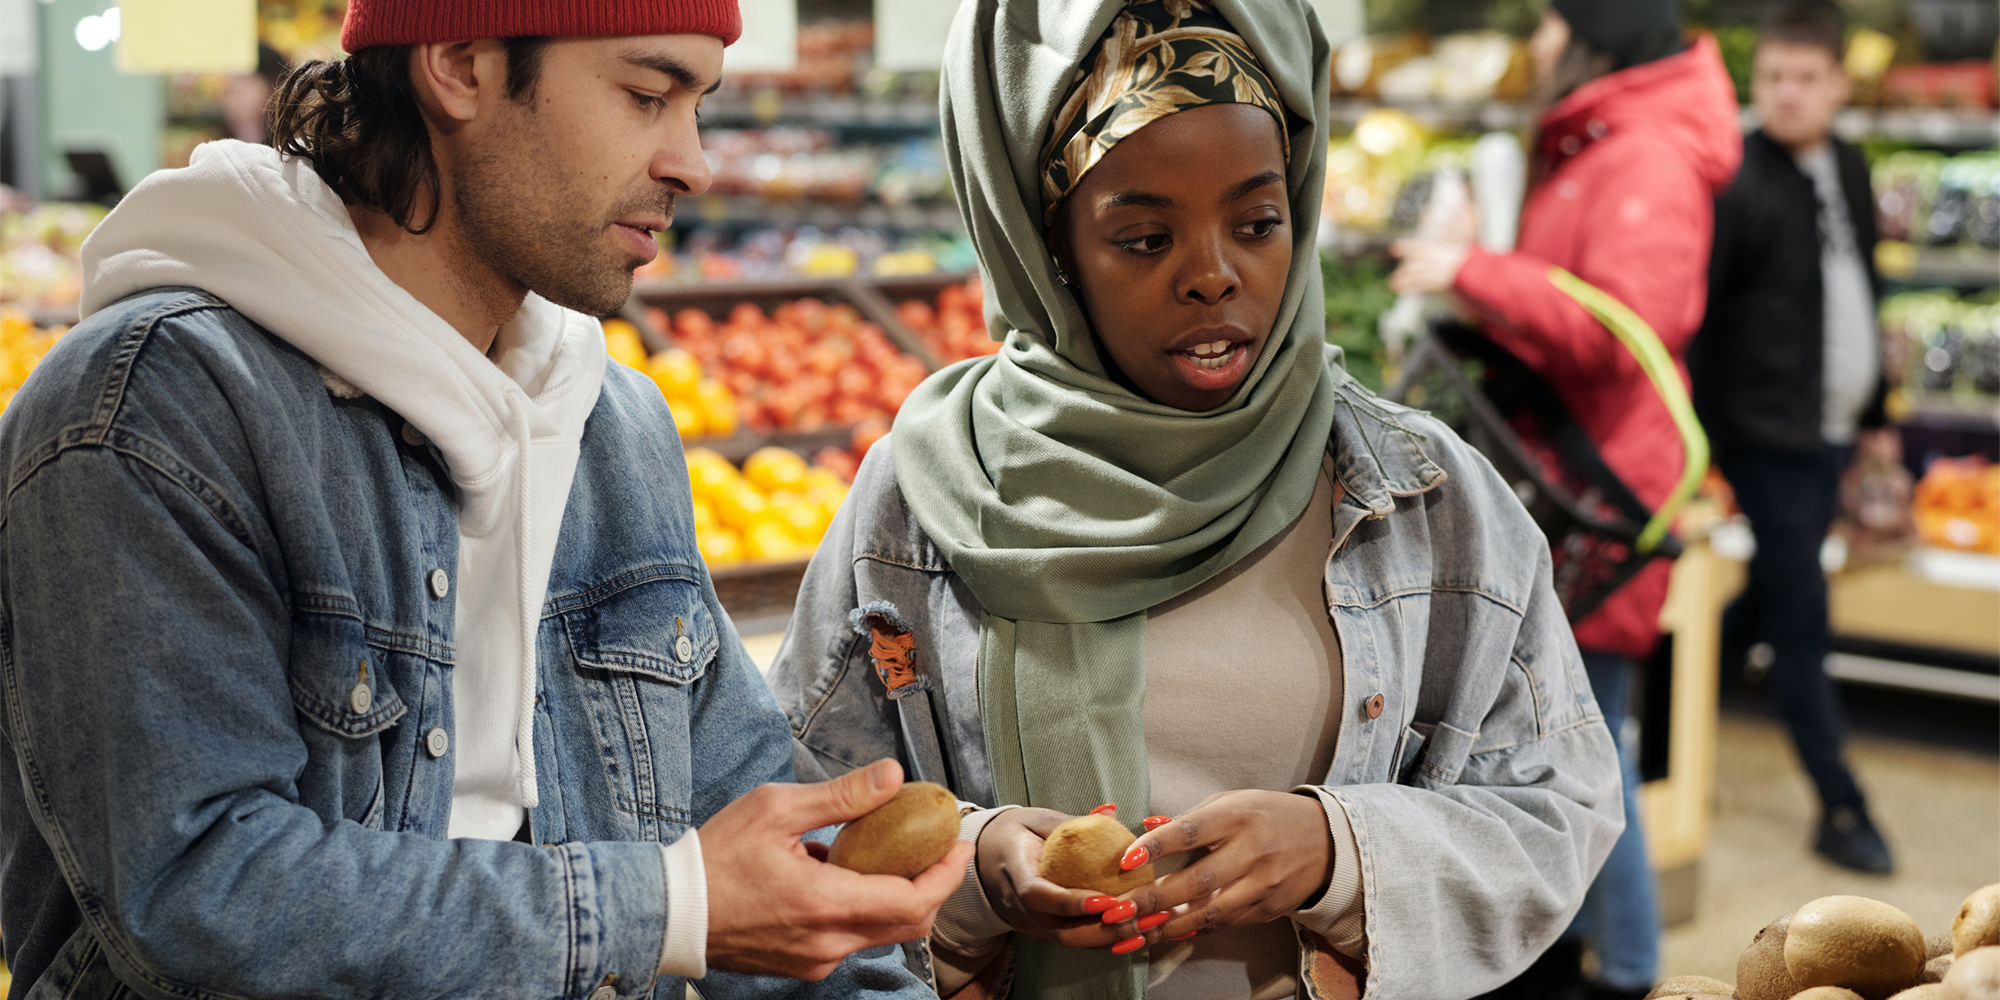 Nutrition is another core component of physical health. Here, a young Muslim couple select fruit at the grocery store.